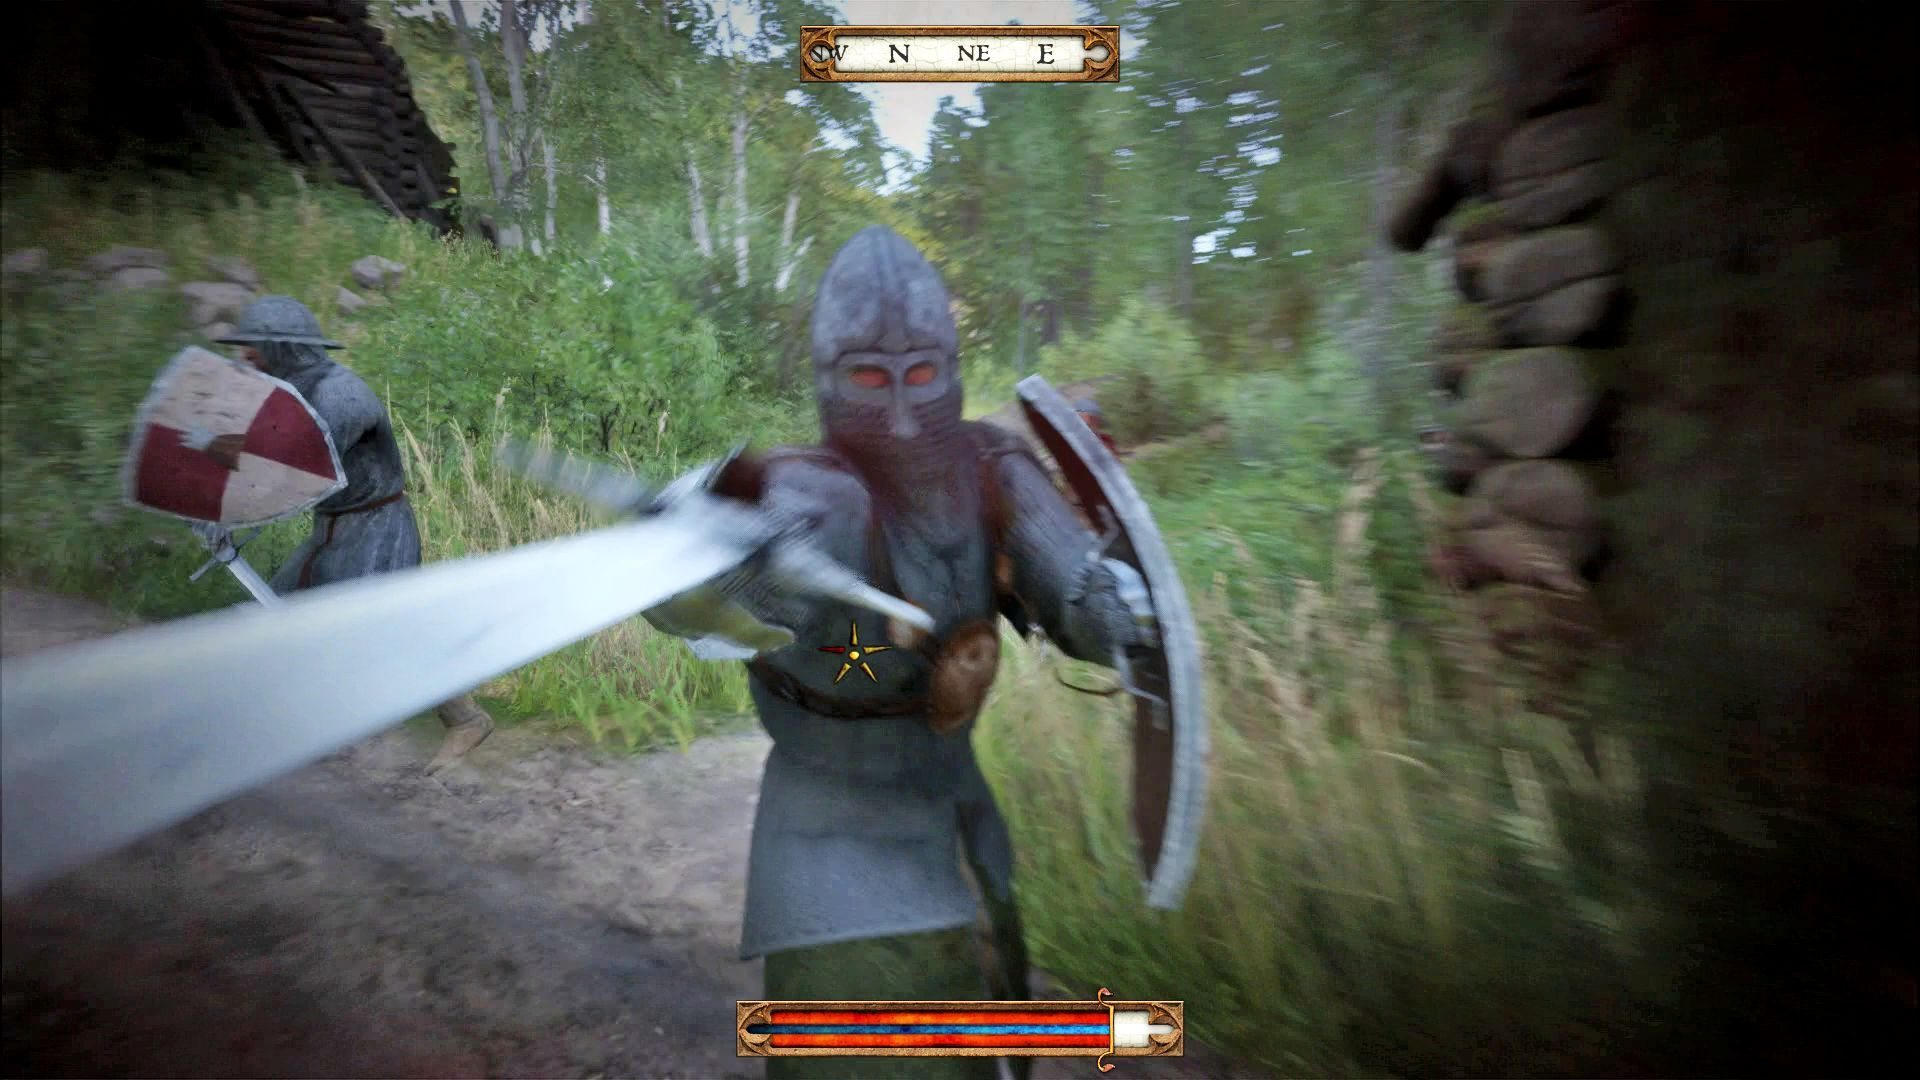 kingdom-come-deliverance-anteprima-gamescom-2016-02